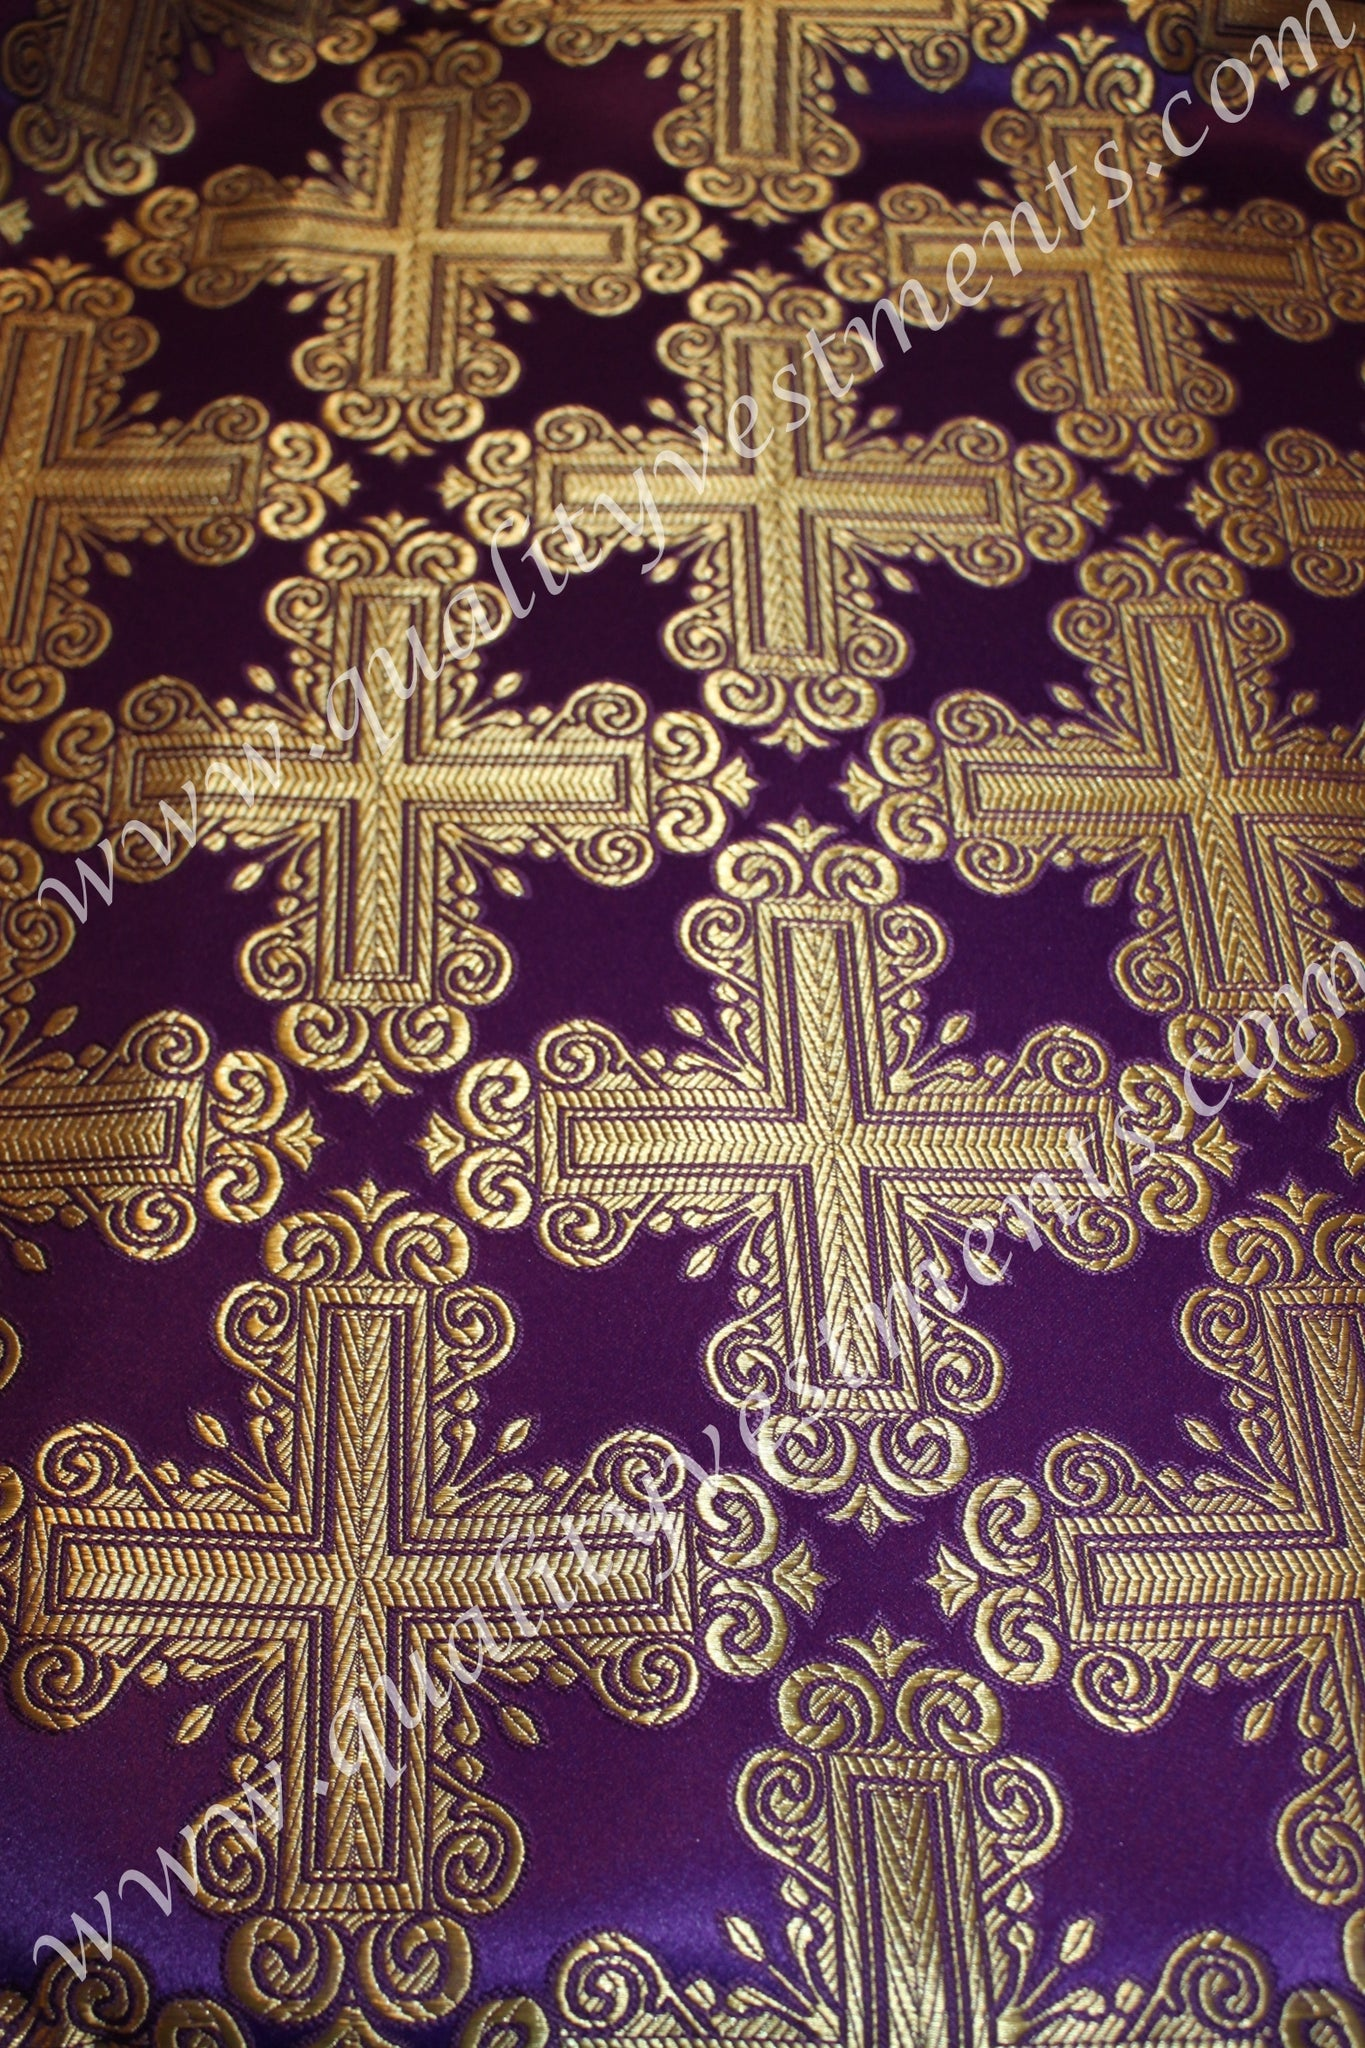 "Purple Gold Nonmetallic Brocade 59"" Wide Liturgical Vestment with Cross Design"